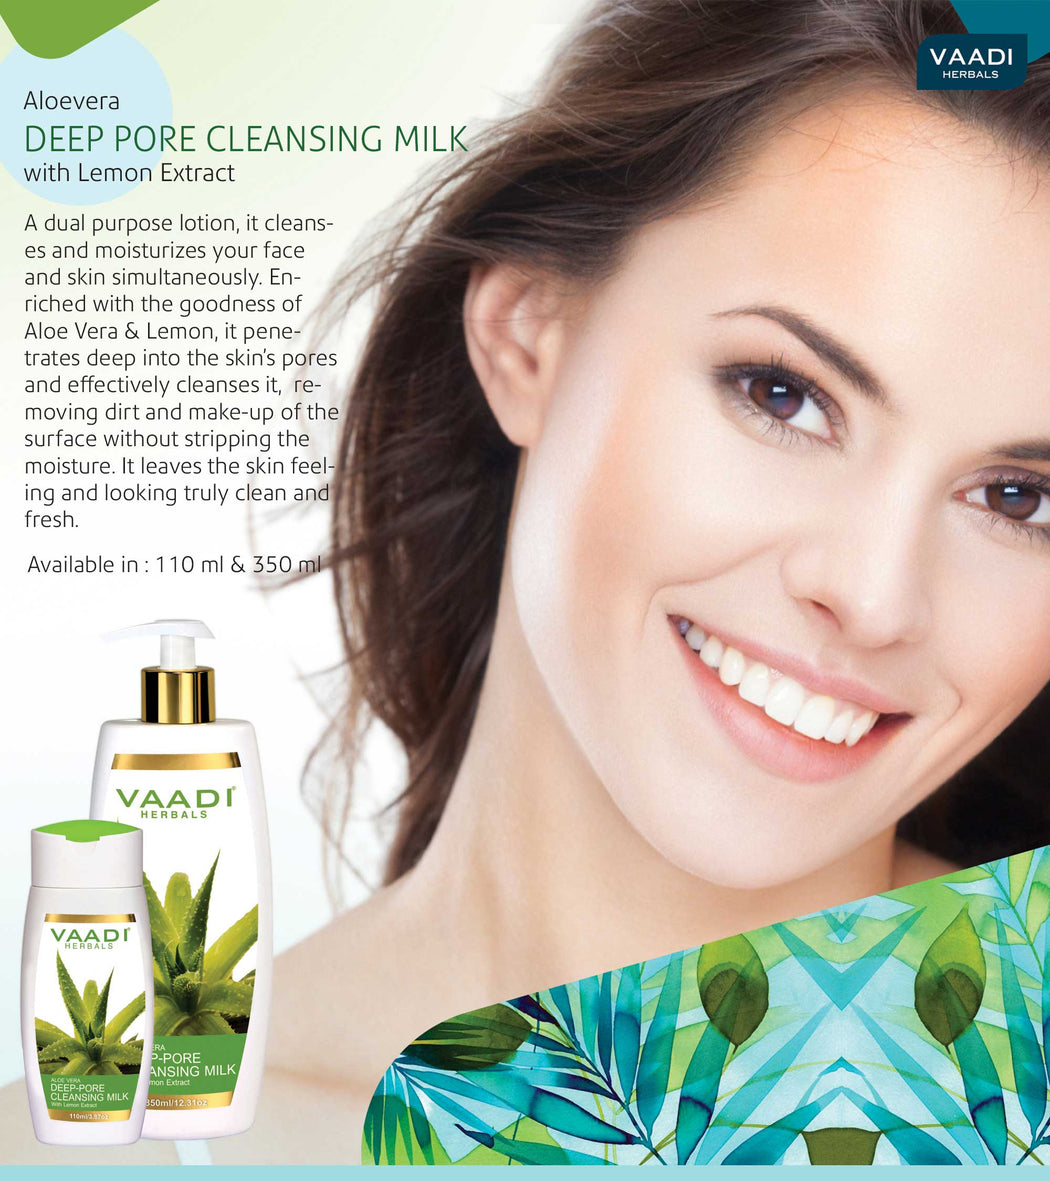 Organic Aloe Vera Deep Pore Cleansing Milk with Lemon Extract - Softens Skin (350 ml/ 12 fl oz)